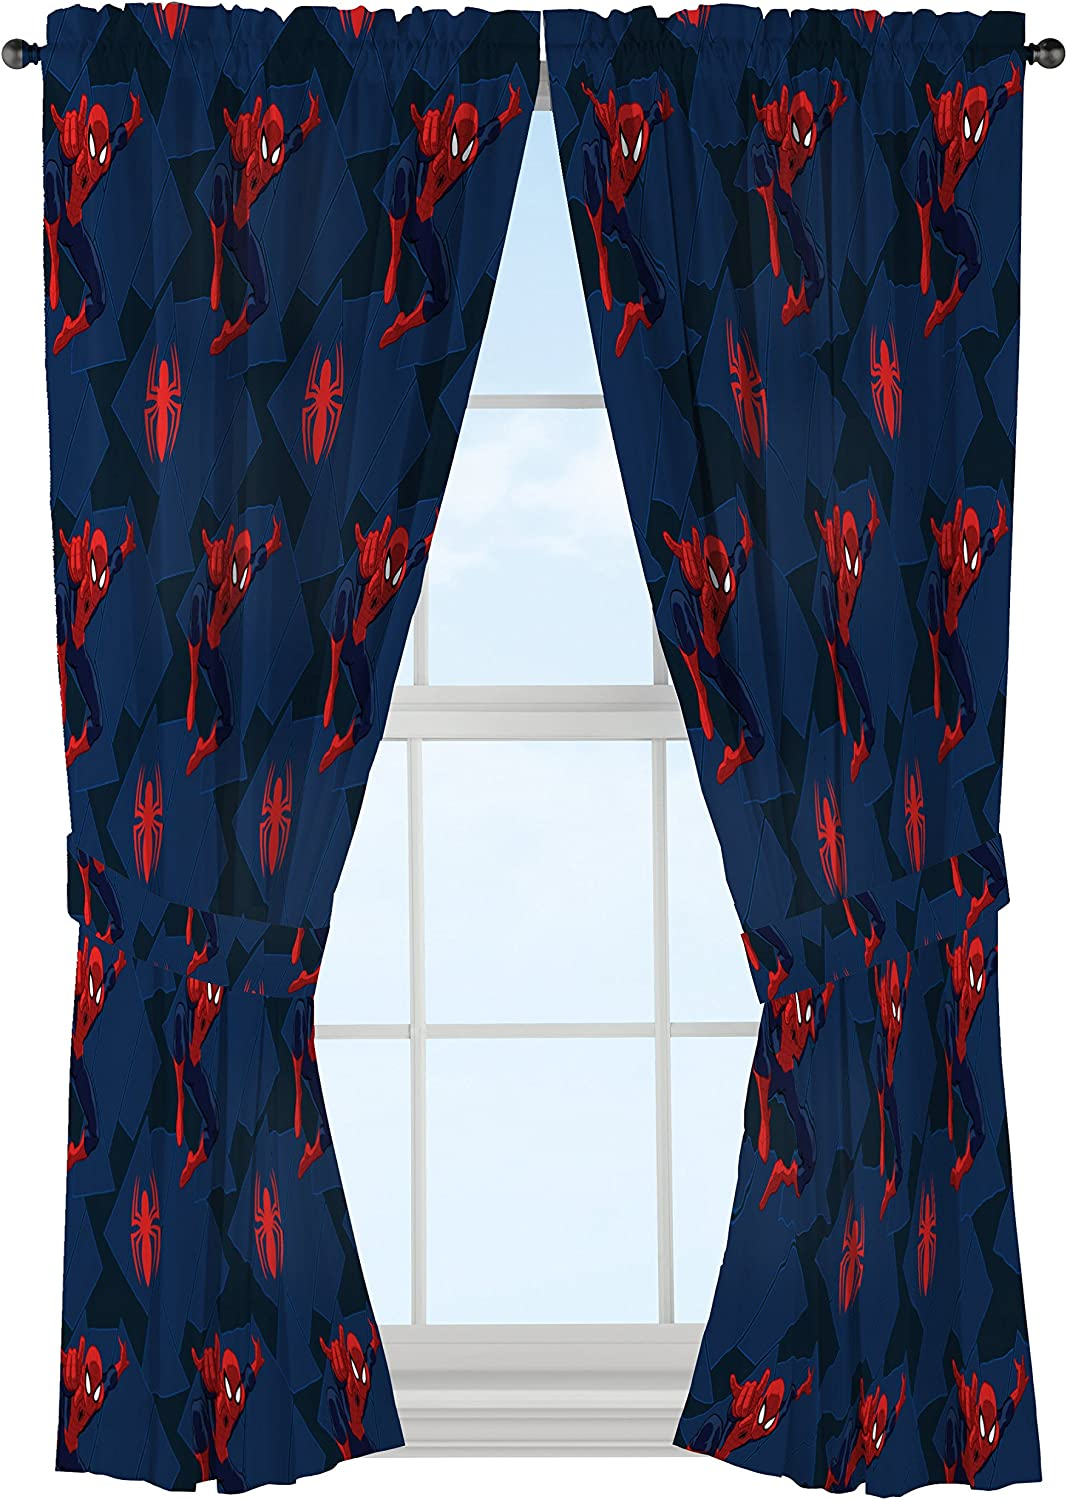 "Jay Franco Marvel Spiderman Classic Saving The Day 63"" Decorative Curtain/Drapes 4-Piece Set (2 Panels, 2 Tiebacks)"